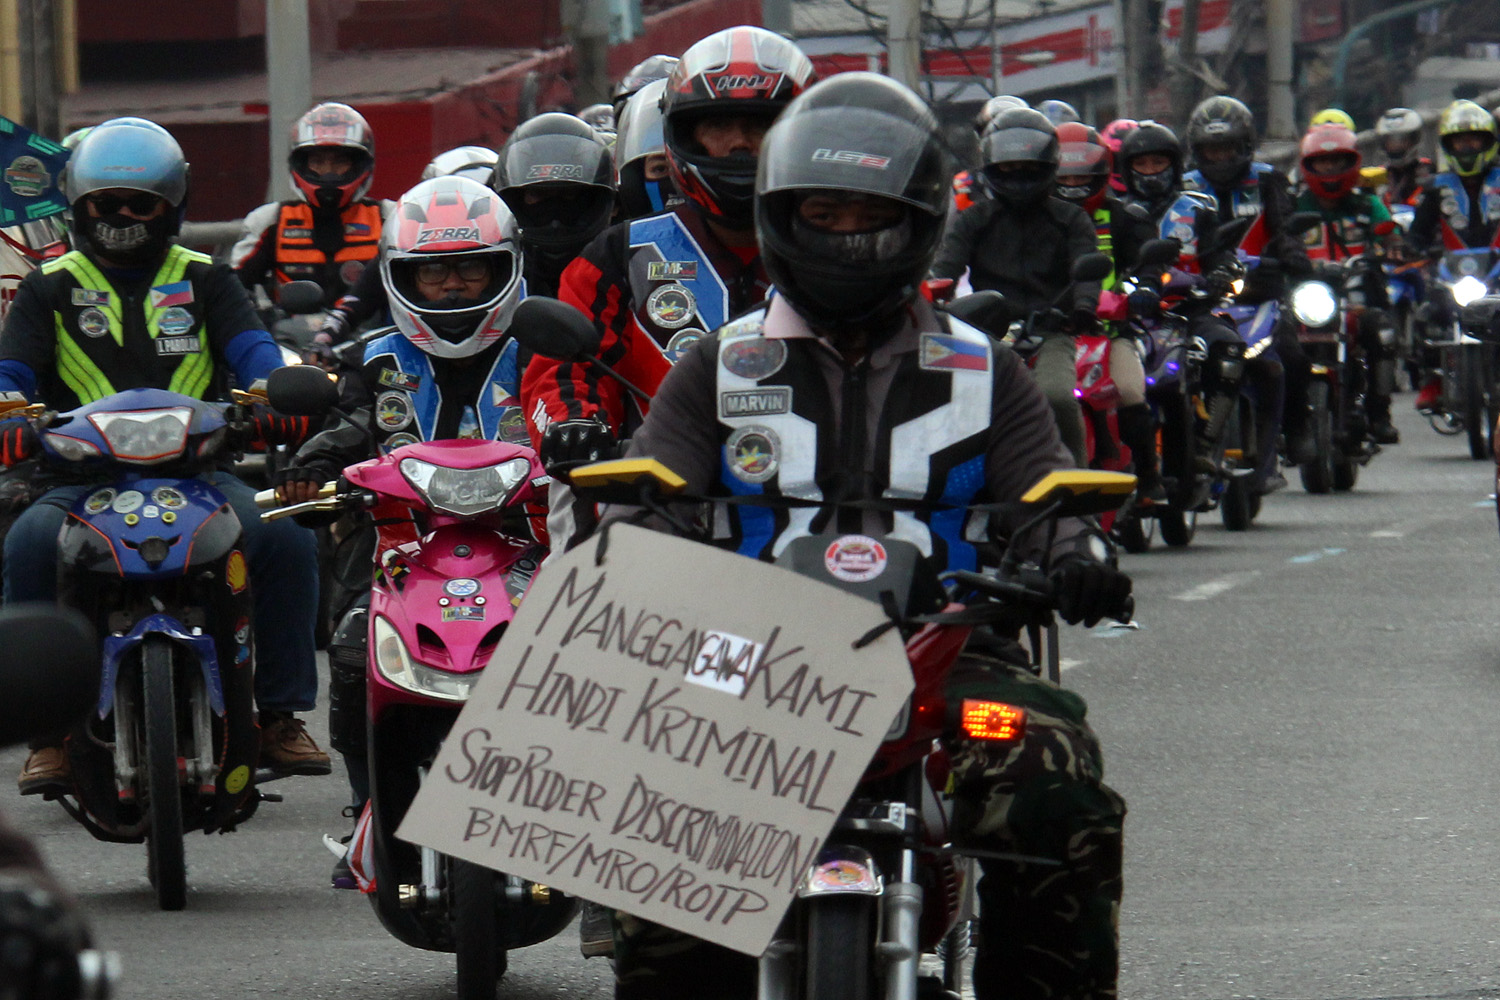 'WORKERS NOT CRIMINALS.' Riders unite along EDSA in December 2018 to protest the Motorcycle Crime Prevention Act's passage. Photo by Darren Langit/Rappler